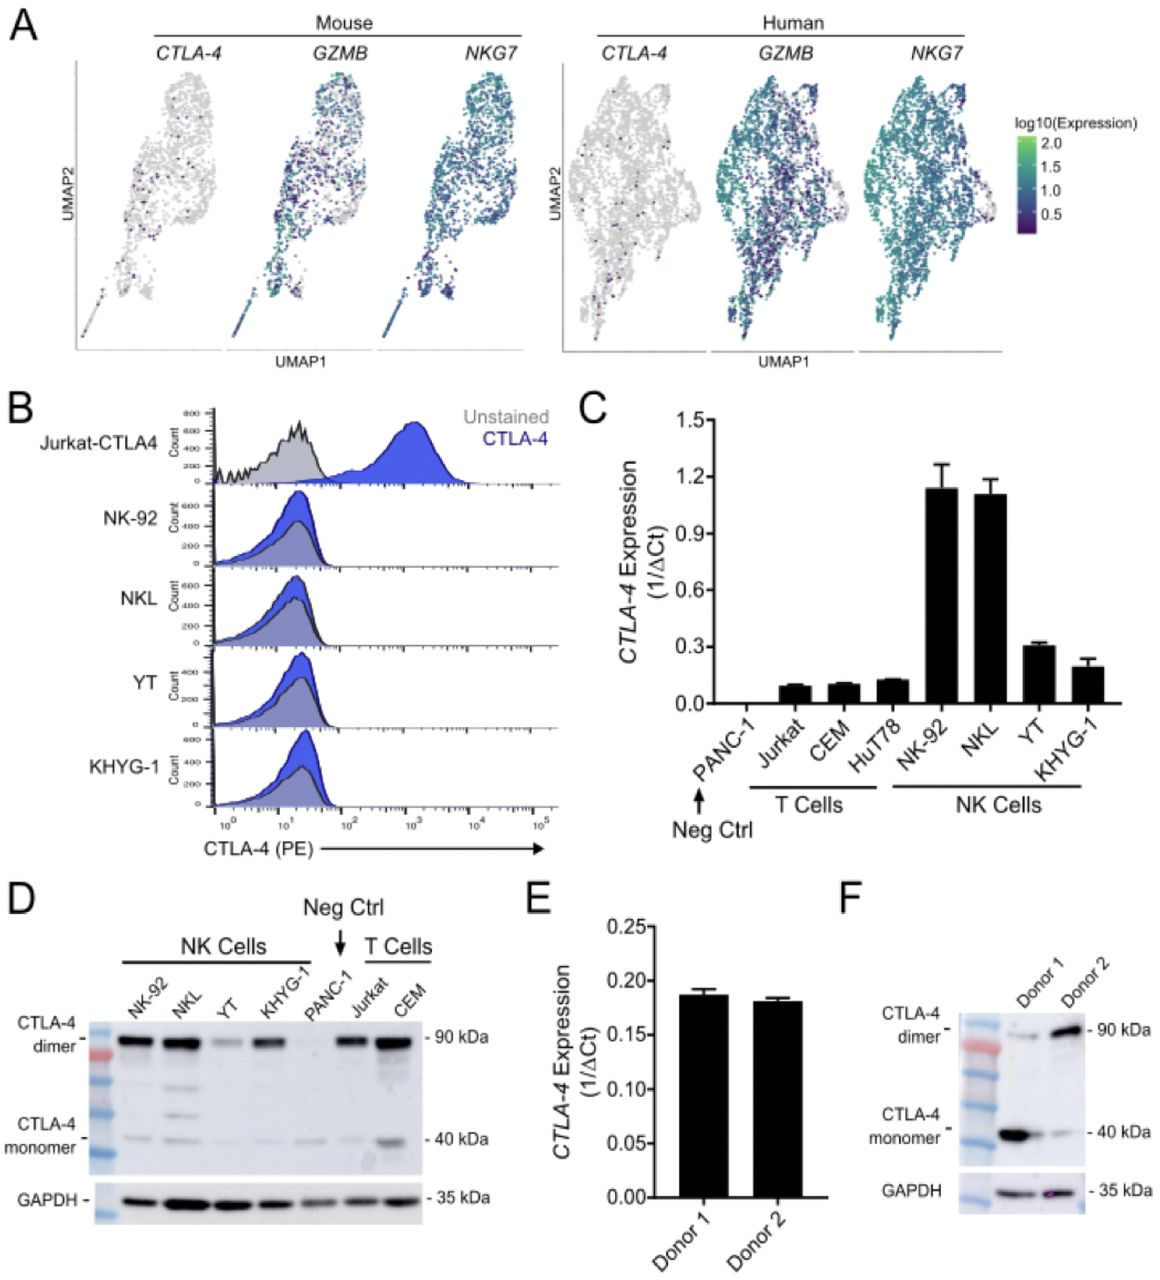 CTLA-4 is expressed by both human NK cell lines and healthy human donor-derived NK cells. A. UMAP dimension reduction with cells colored by single-cell gene expression for CTLA-4 and representative immune activation genes in mouse (left) and human (right) intratumoral NK cells. The pattern of CTLA-4 expression is consistent with the reduced ability of scRNA-seq to capture low to moderately expressed genes. B. Flow cytometry for surface expression of CTLA-4 in positive control (Jurkat-CTLA4) and NK cell lines (NK-92, NKL, YT, KHYG-1). C. Quantitative real-time PCR (qrt-PCR) analysis of CTLA-4 expression in a CTLA-4 null line (PANC-1), T cell lines (Jurkat, CEM, HuT78), NK cell lines (NK-92, NKL, YT, KHYG-1). D. Western blot demonstrating CTLA-4 expression in human NK cell lines. E. qrt-PCR demonstrating CTLA-4 expression in CD56+ selected ex vivo unstimulated NK cells derived from healthy human donors. Graphs are representative of 4 donors. F. Western blot of CTLA-4 expression in CD56+ selected ex vivo unstimulated NK cells derived from healthy human donors. Blots are representative of 4 donors.